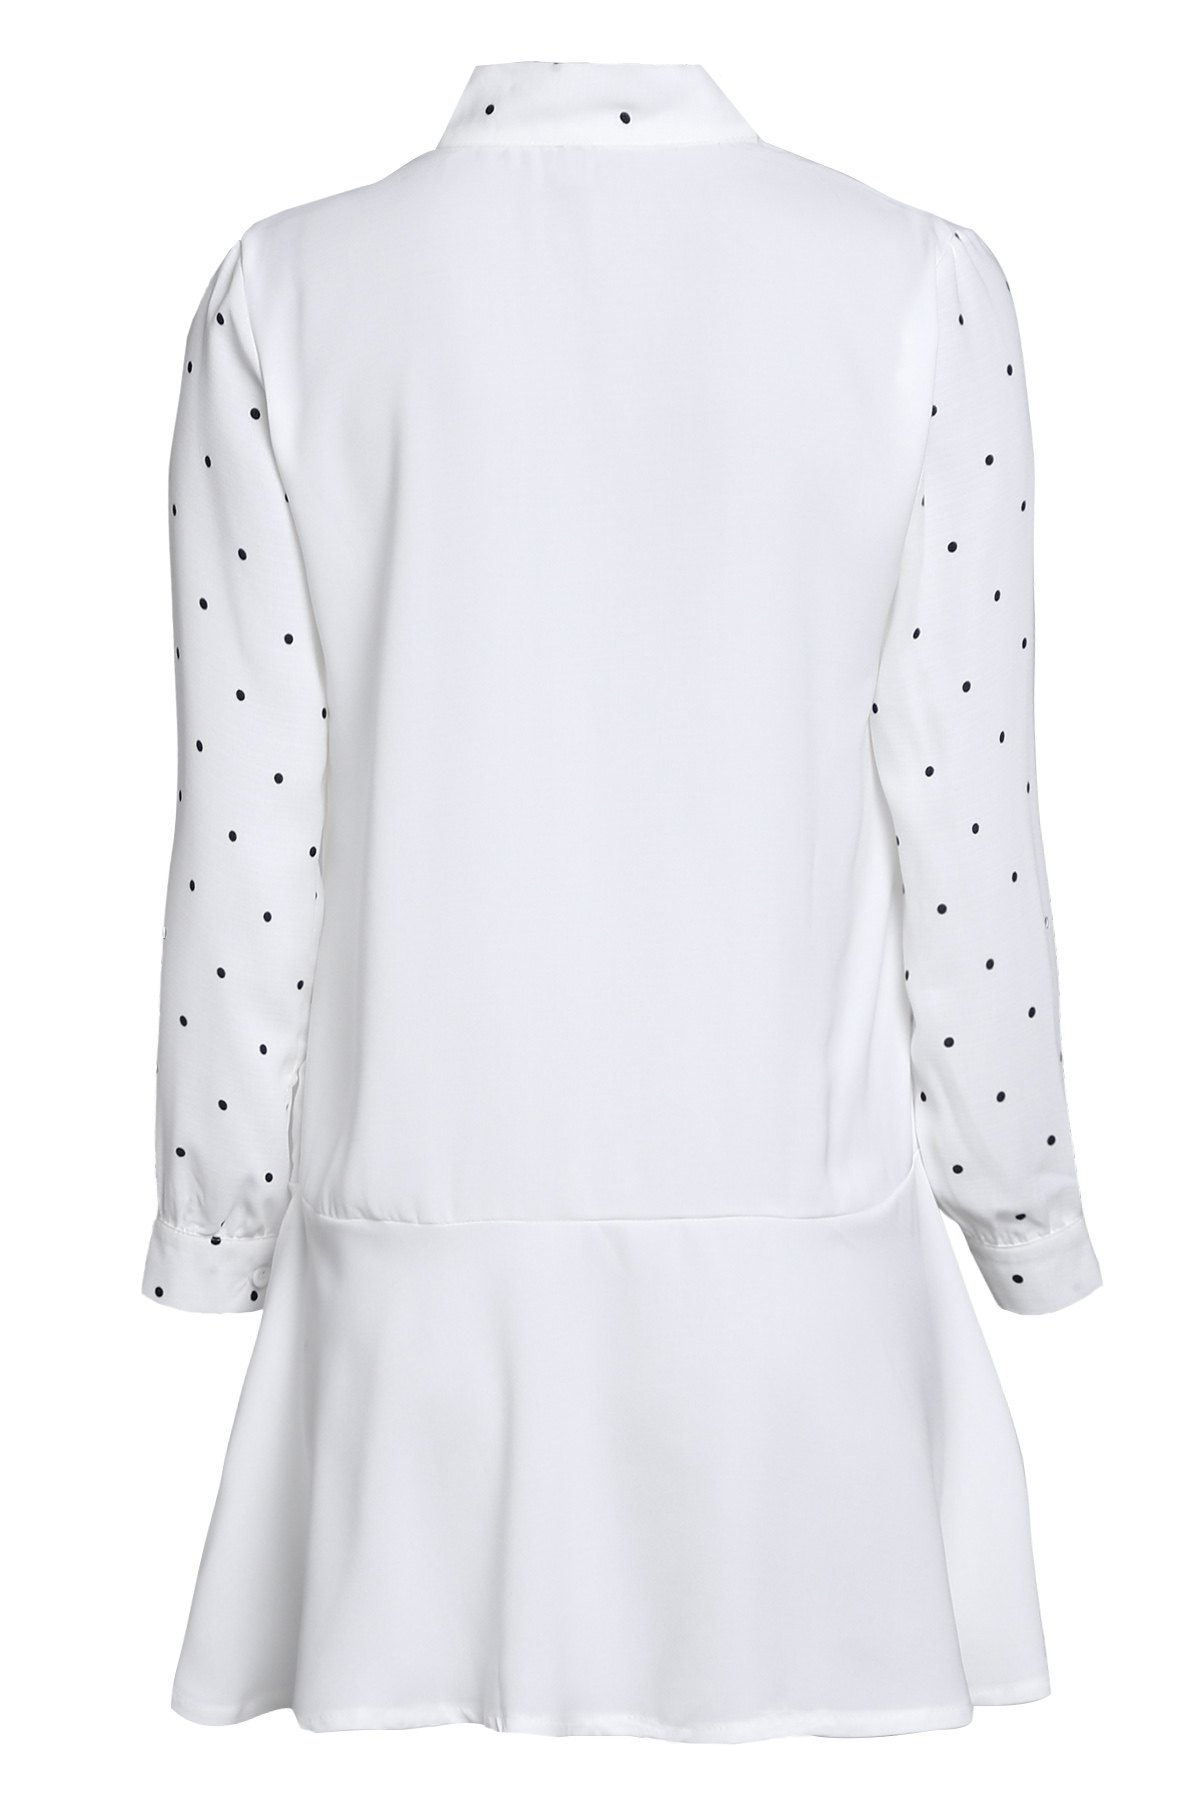 Polka Dot Self Tie Long Sleeve Dress - WHITE ONE SIZE(FIT SIZE XS TO M)